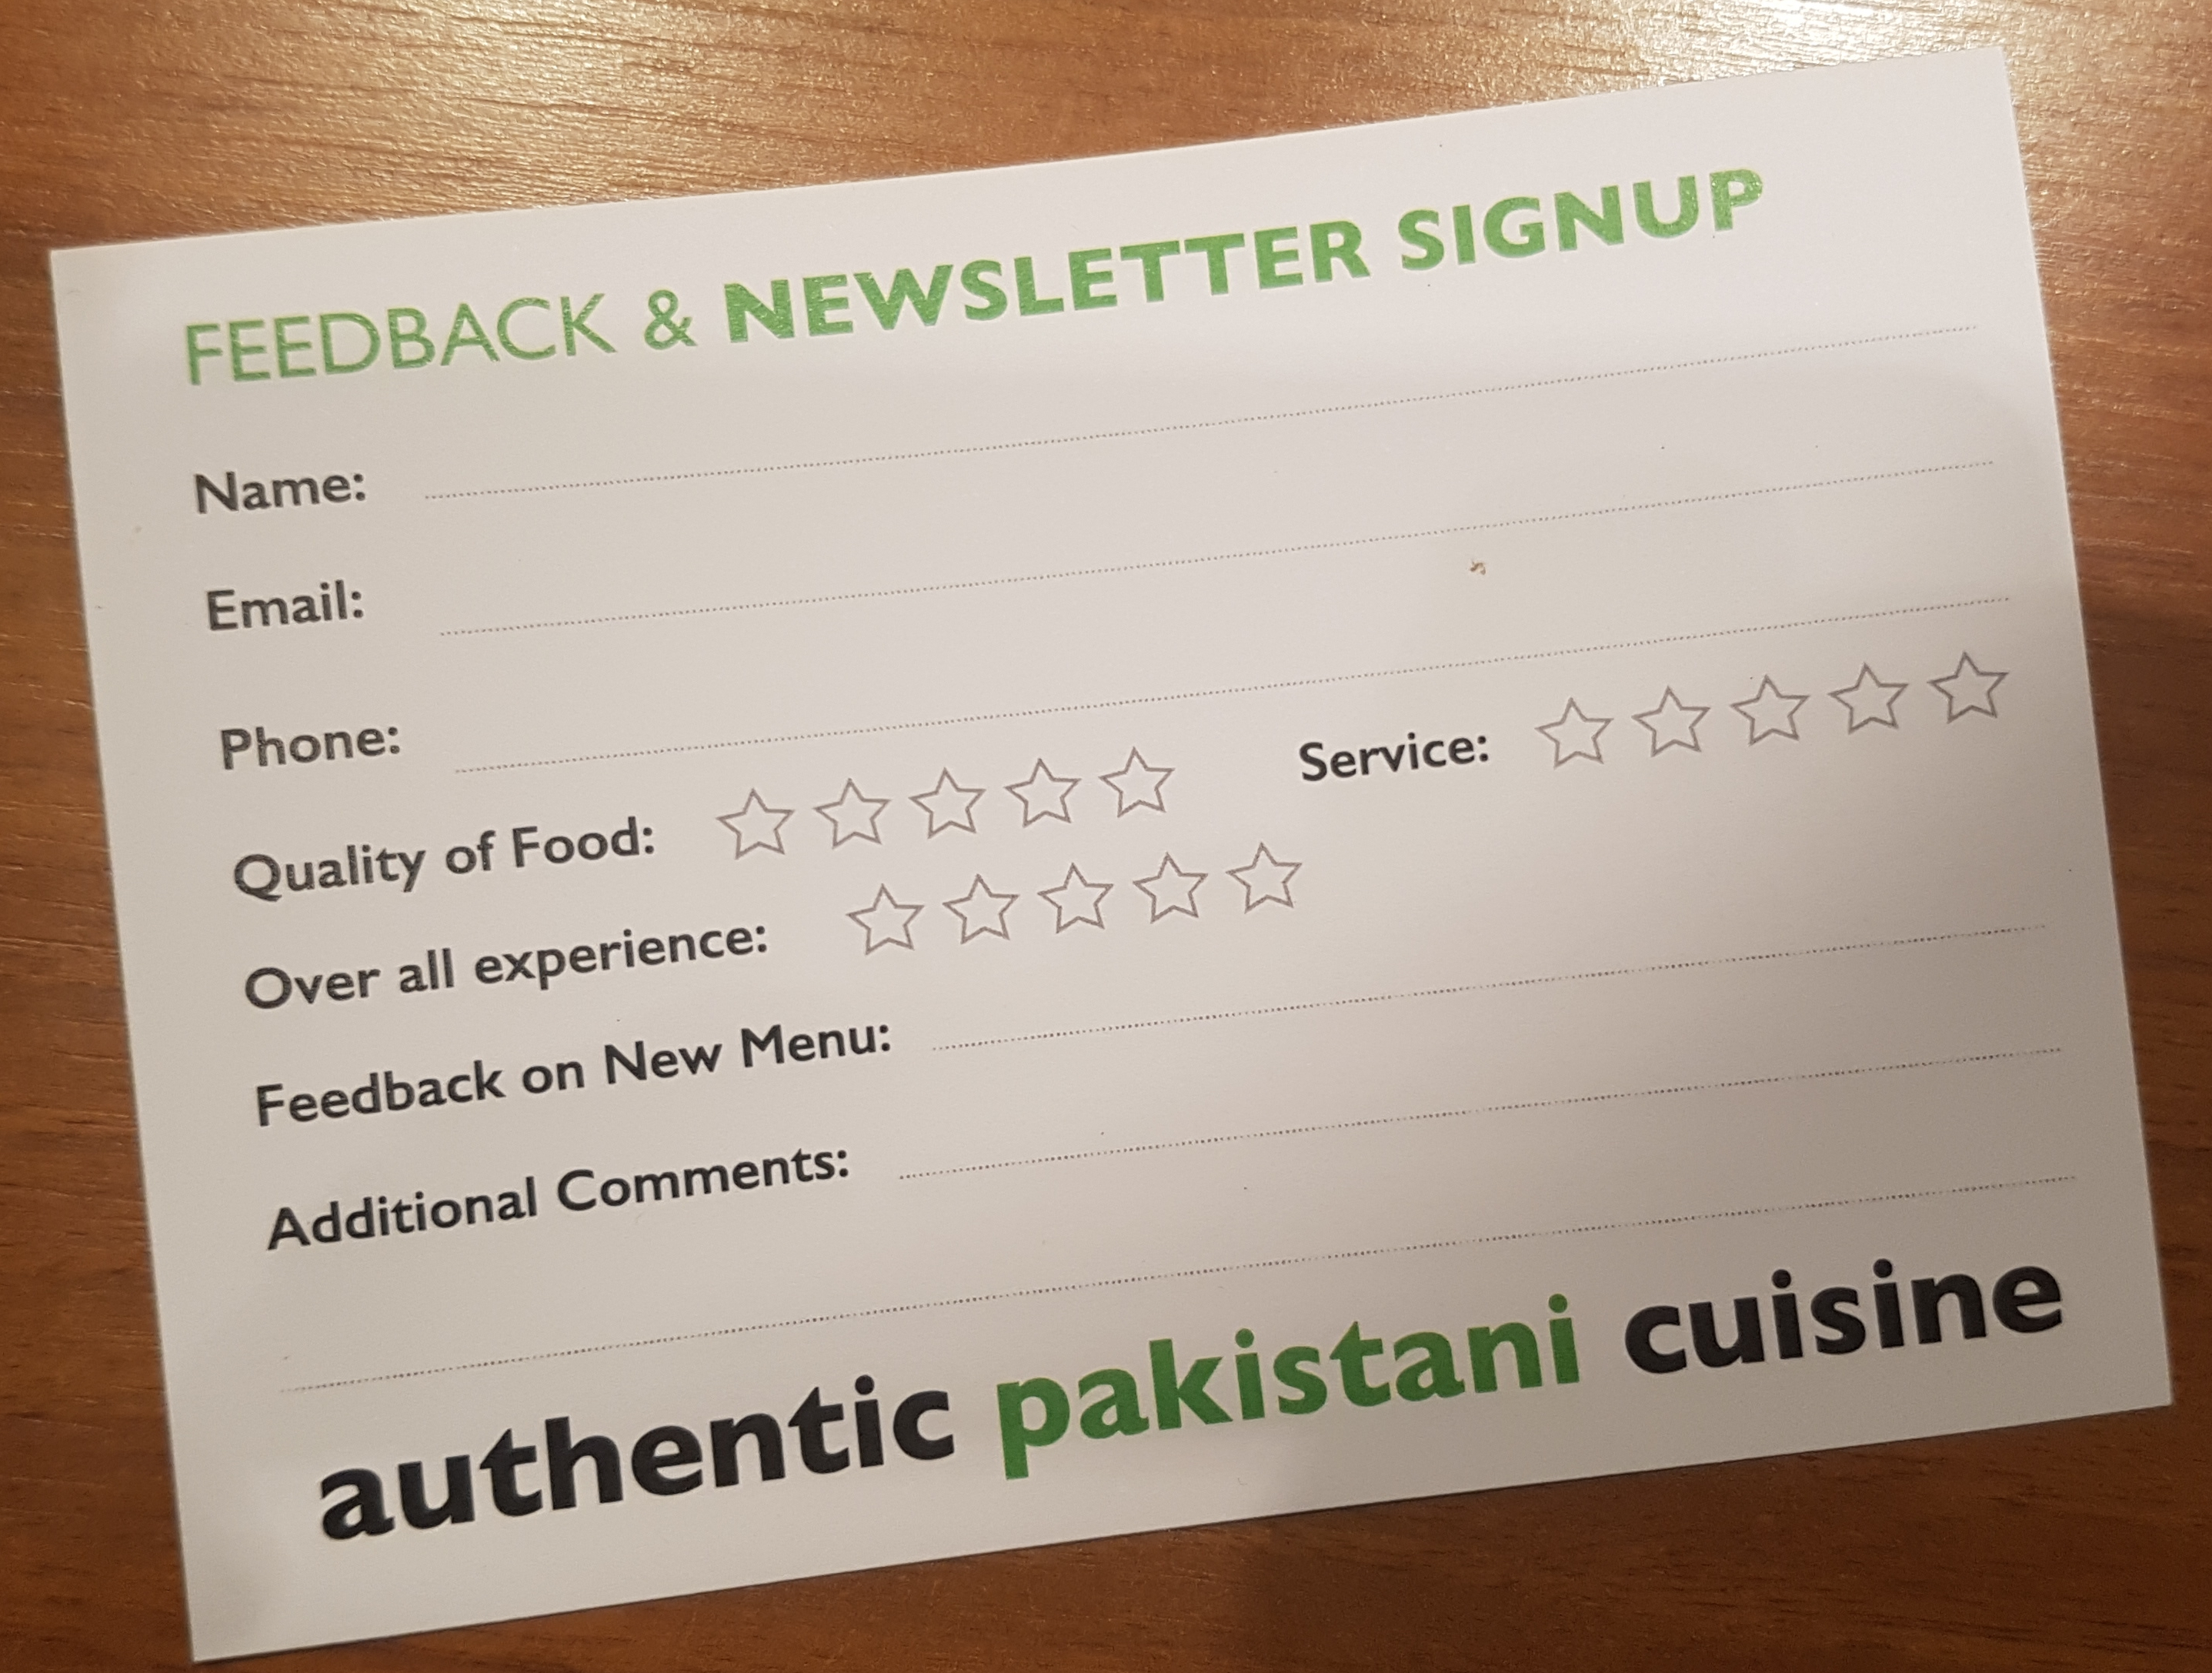 GDPR - Classic Restaurant Feedback and Newsletter Form